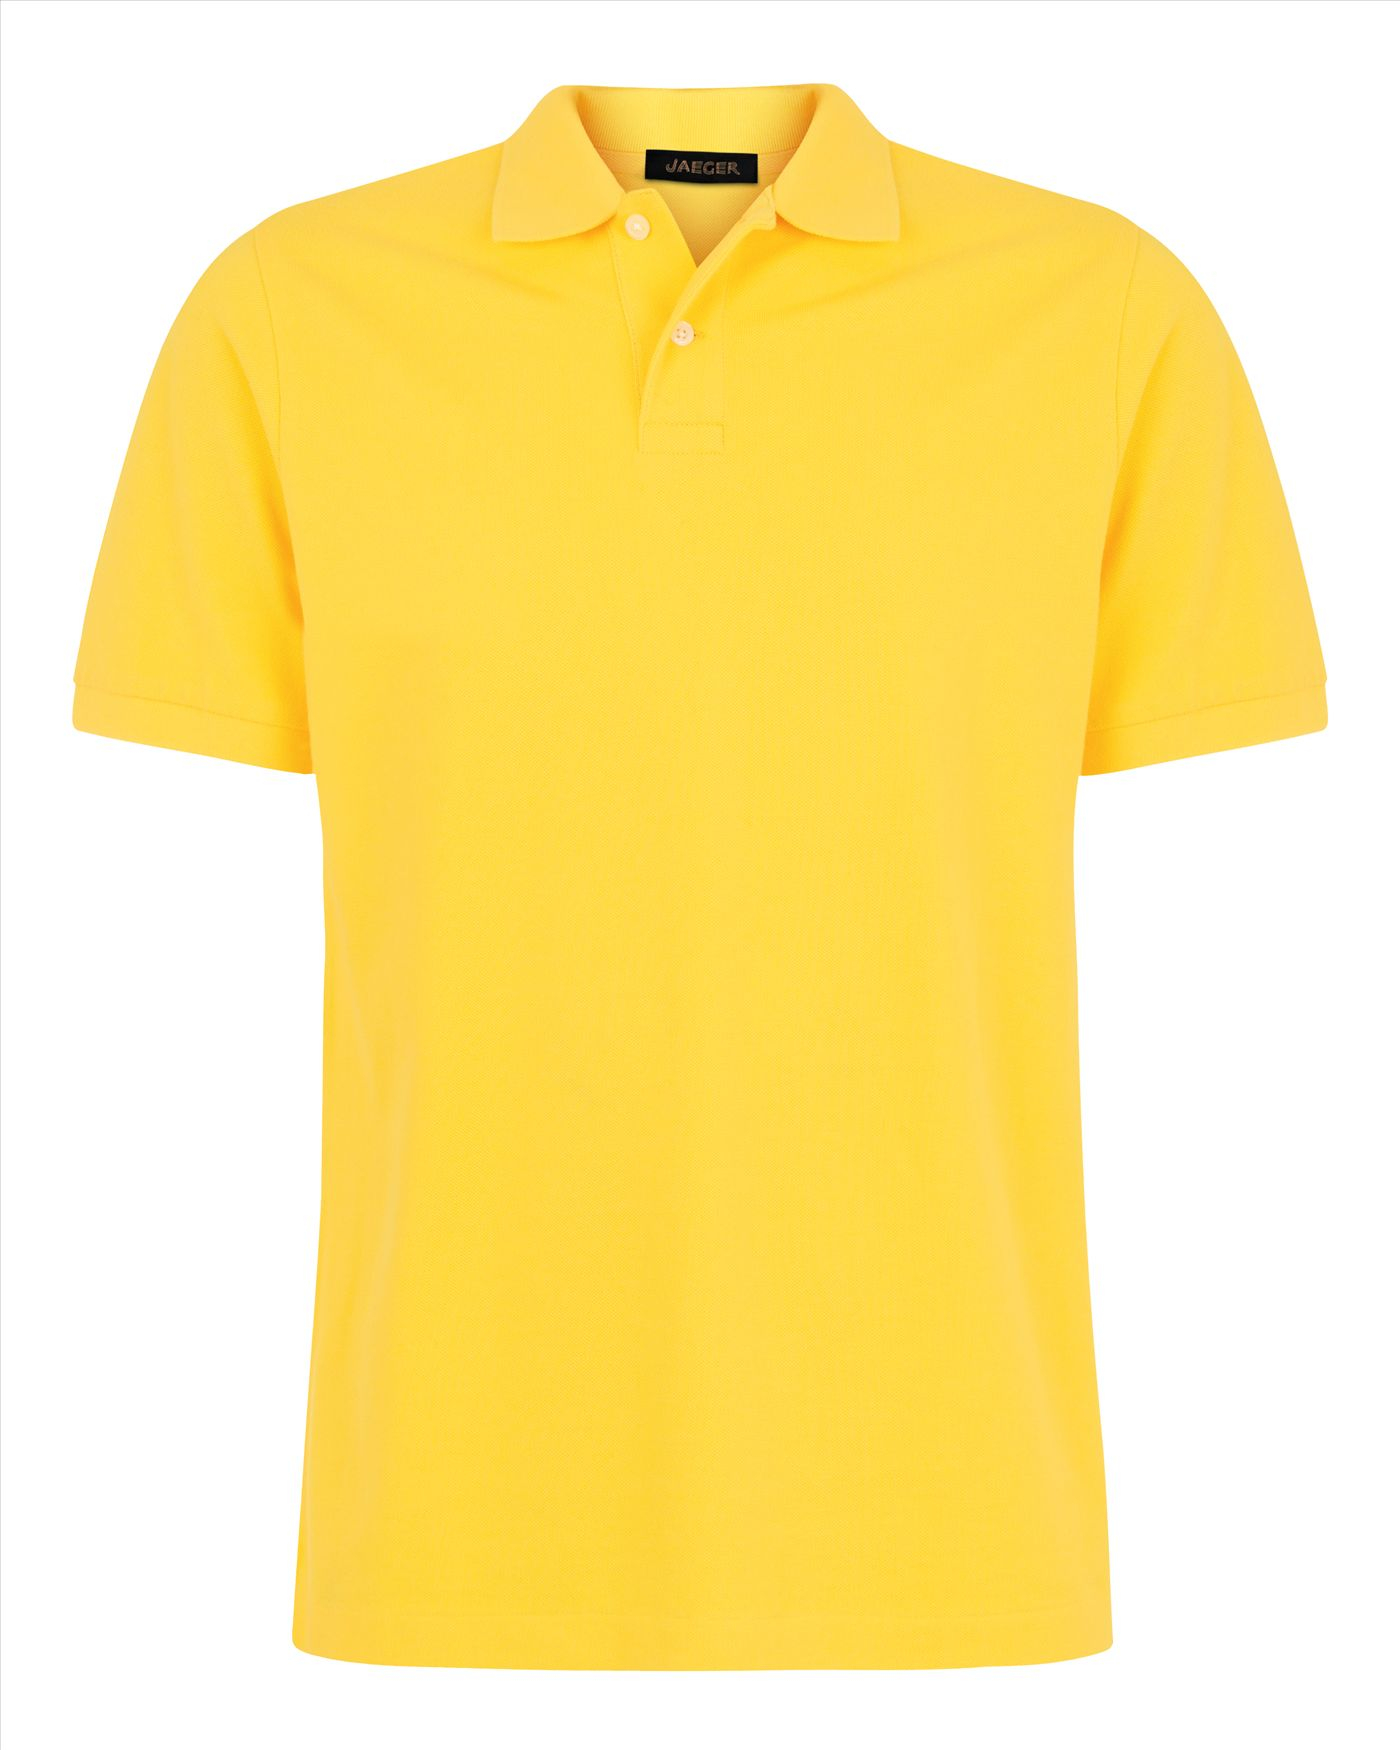 lyst jaeger plain pique polo shirt in yellow for men